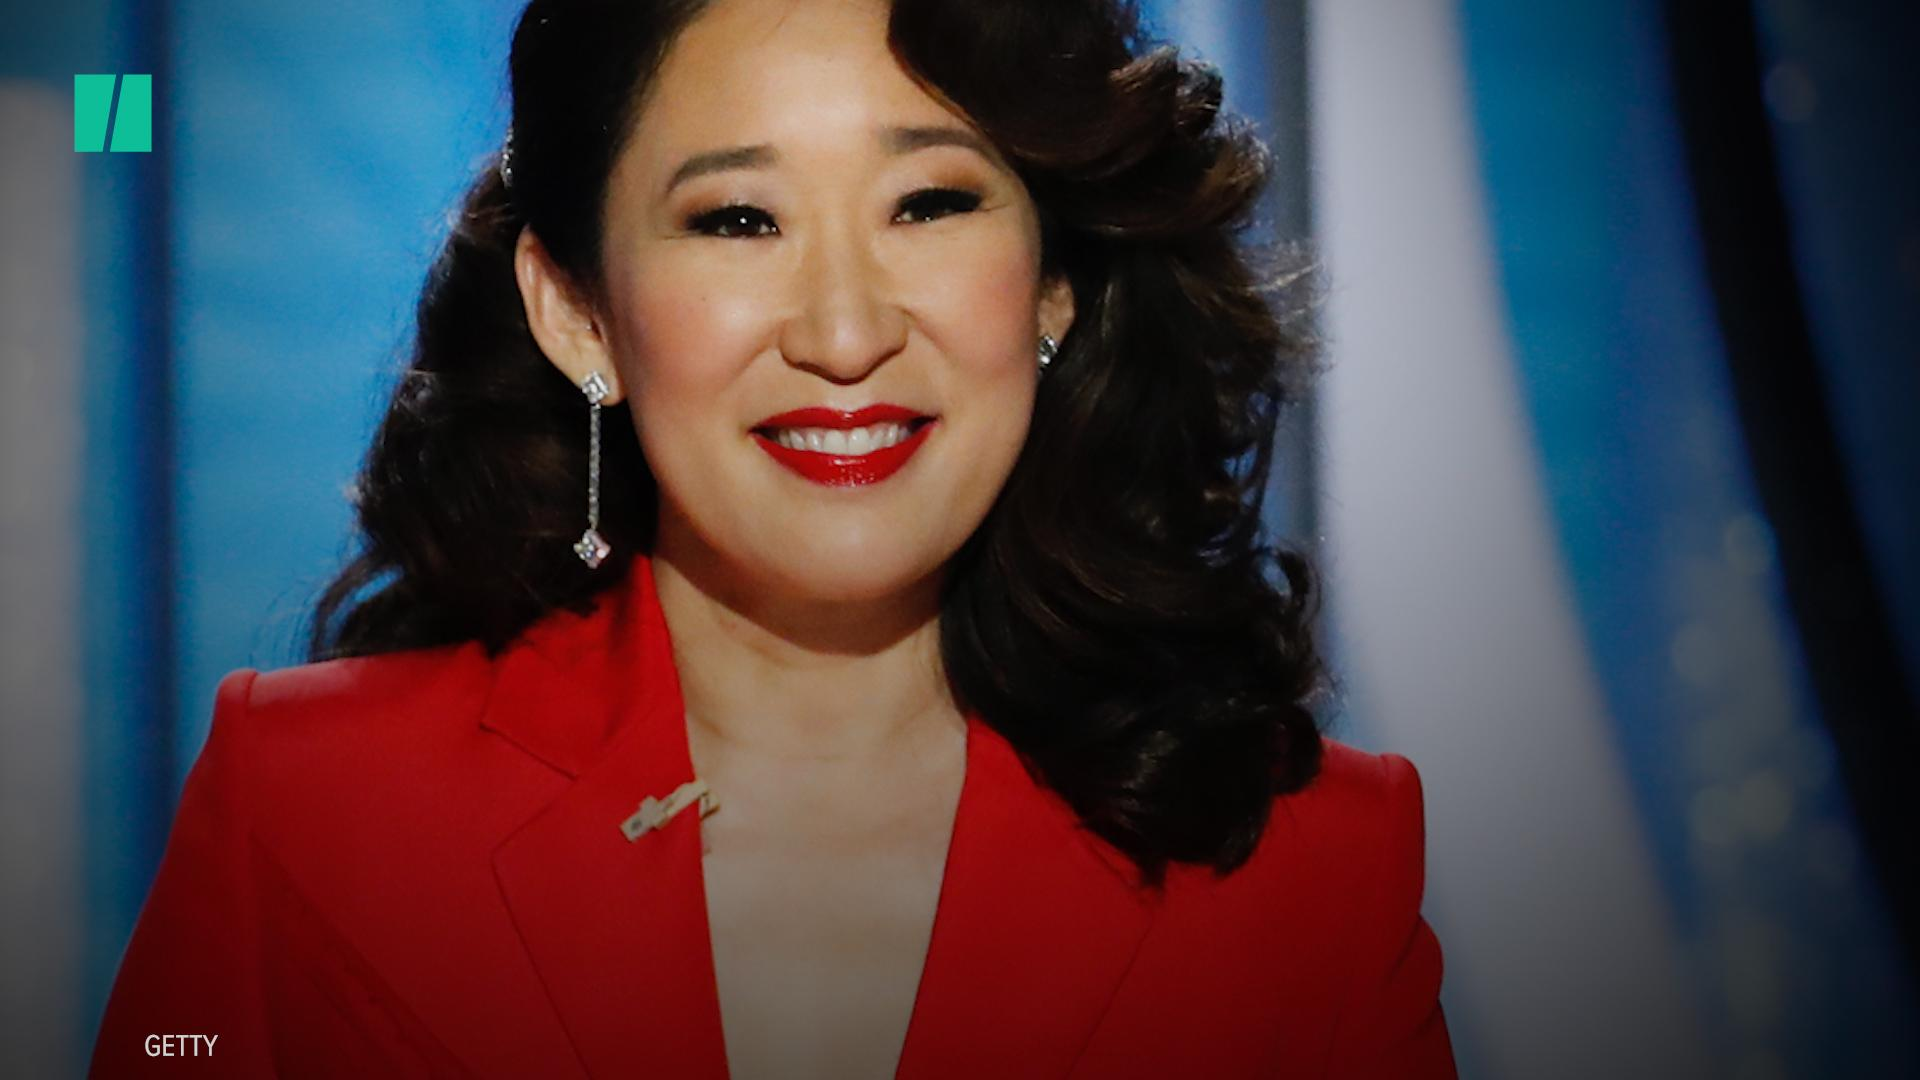 Sandra Oh On Why She's Giving 'Less F**ks' And Feeling More Secure